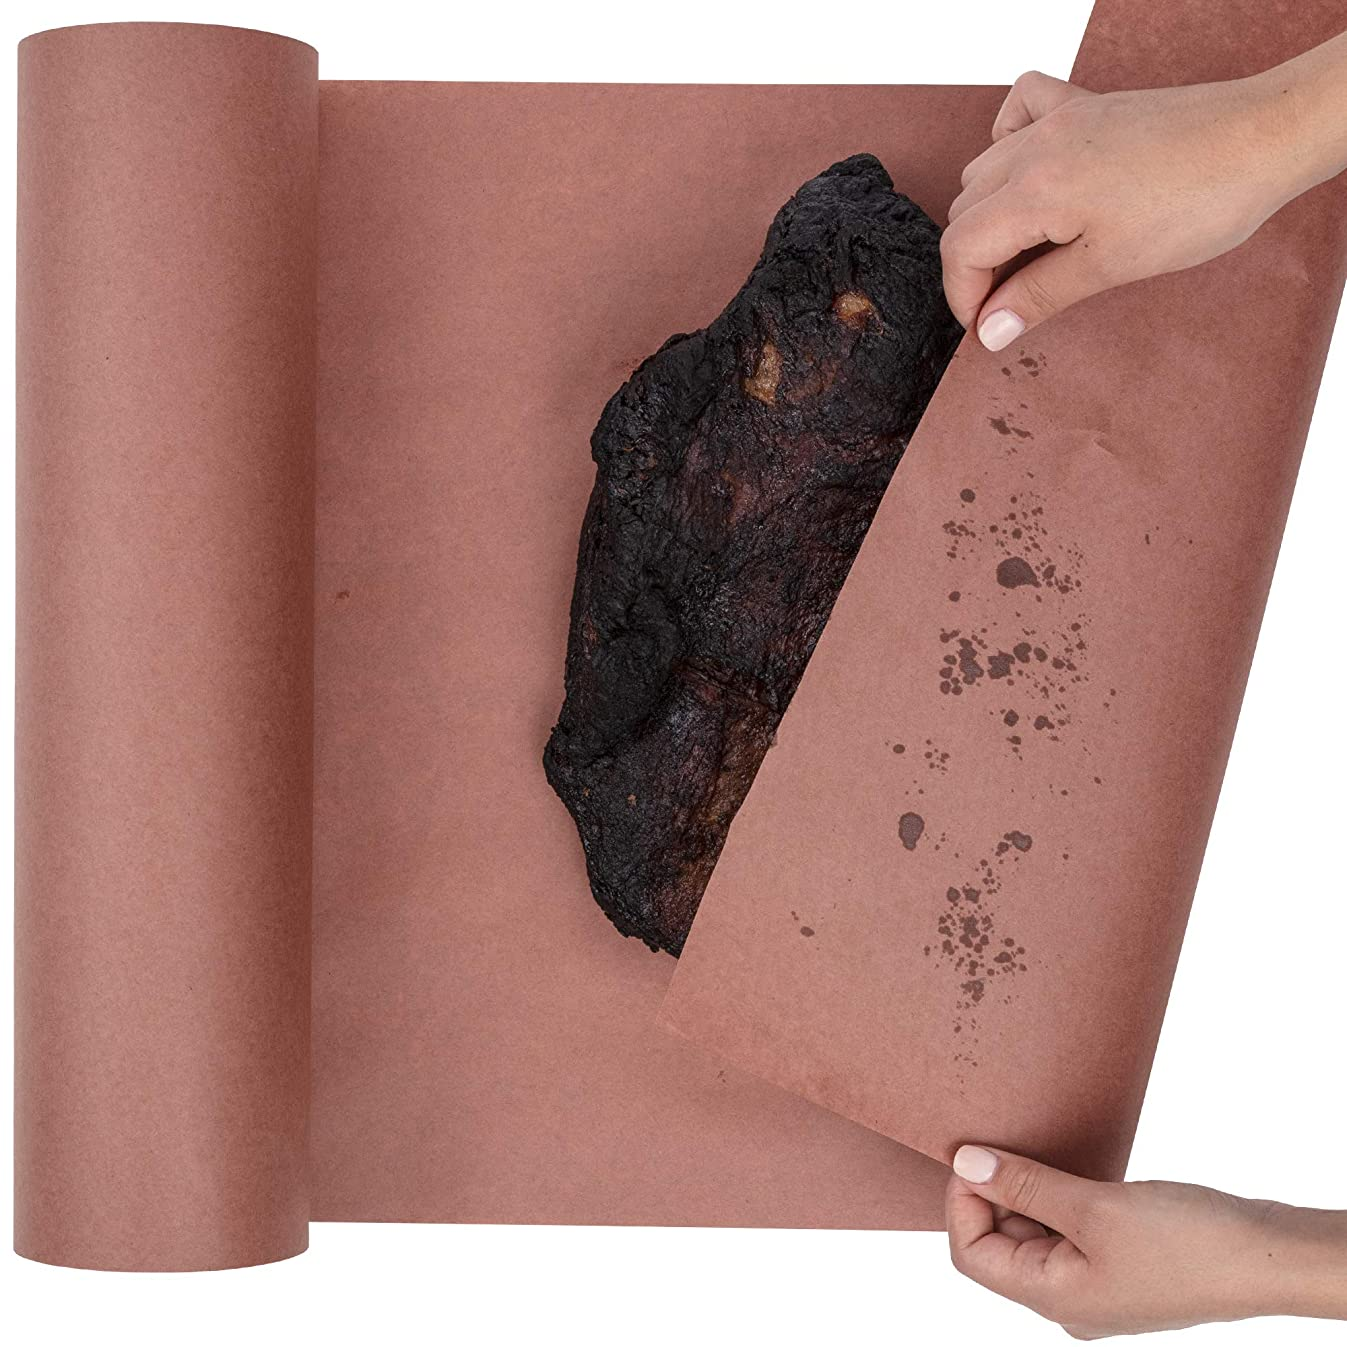 Butcher Paper Roll USA Made, Fda Approved, for BBQ and Meat Smoking. Natural Unbleached Paper by DIY Crew (Pink, 24